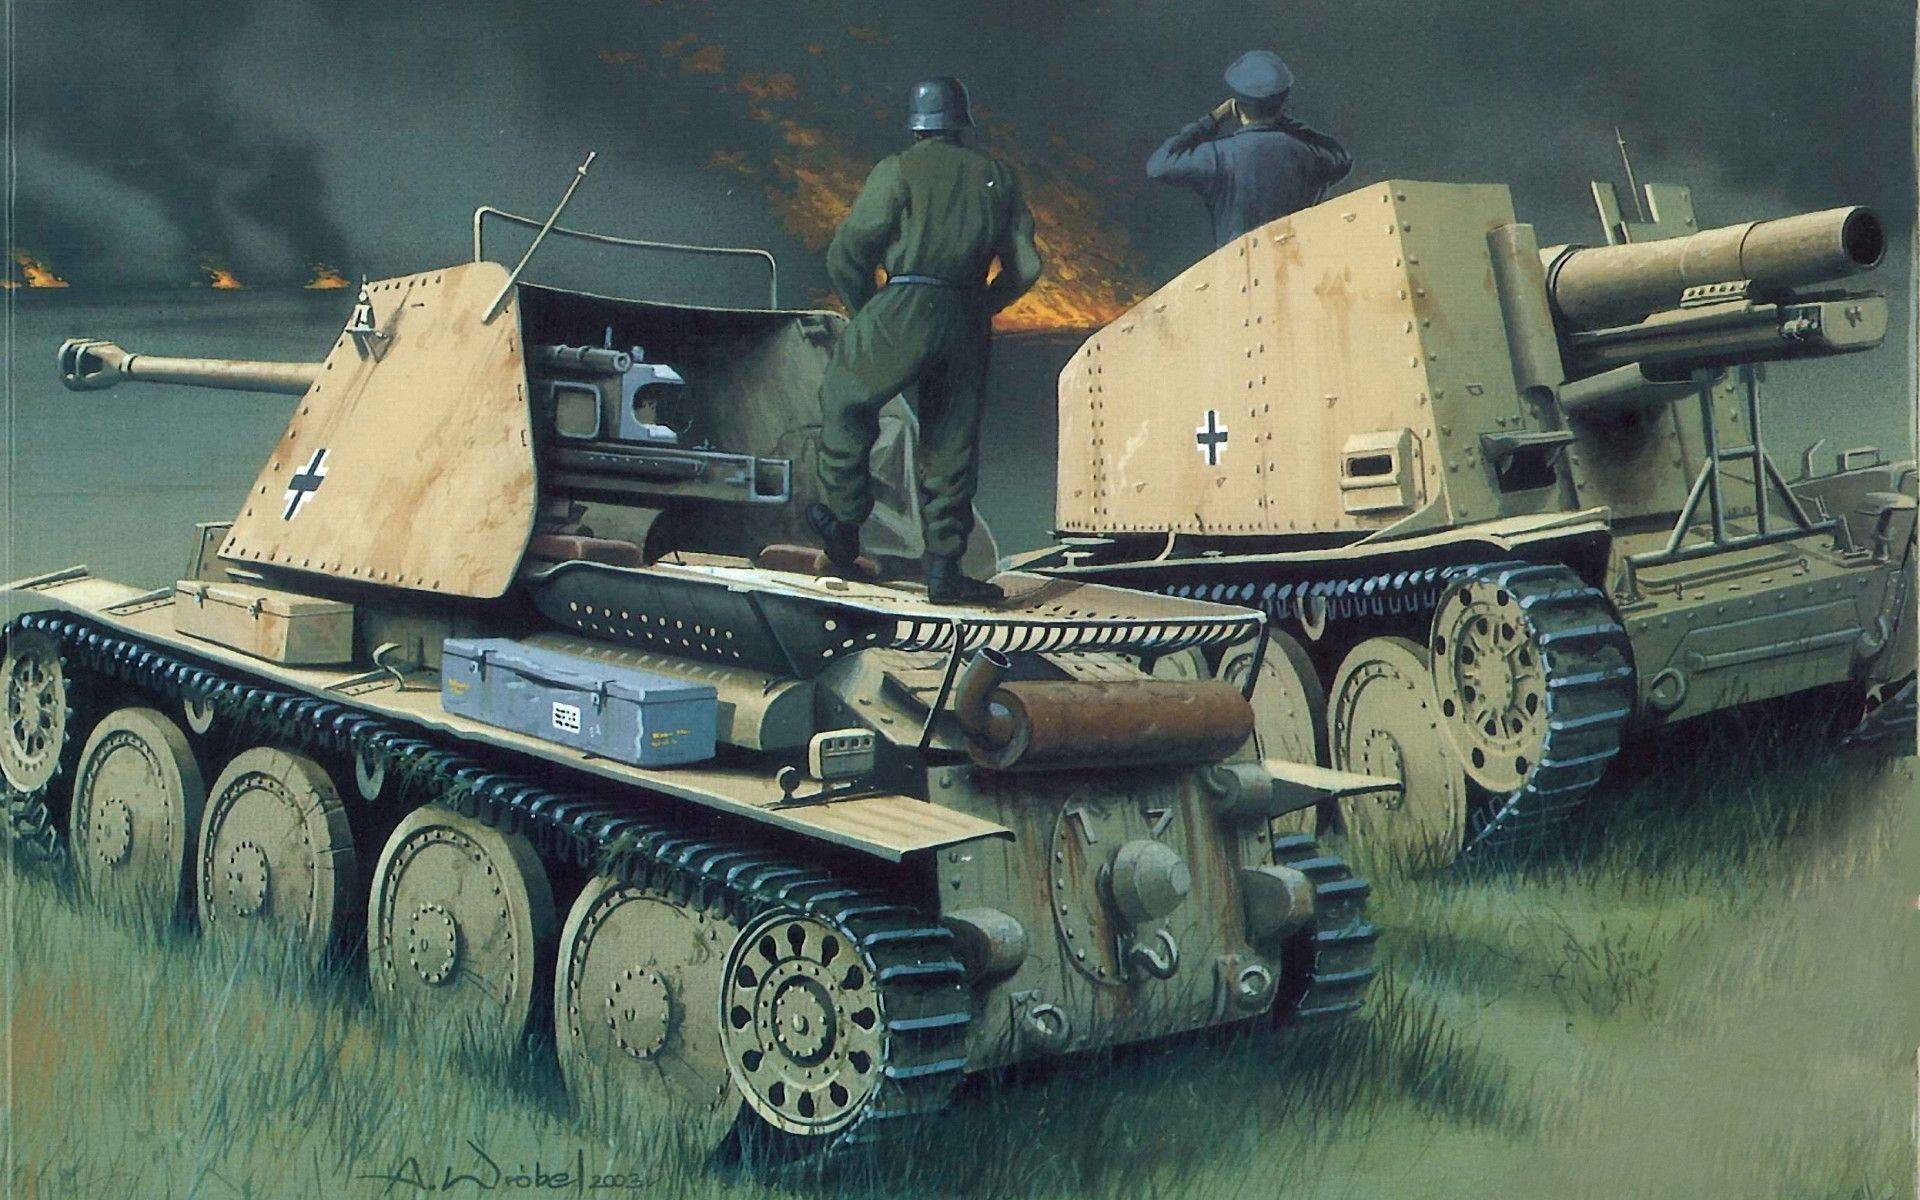 Download wallpapers panzerjager marder, ww2, military art free